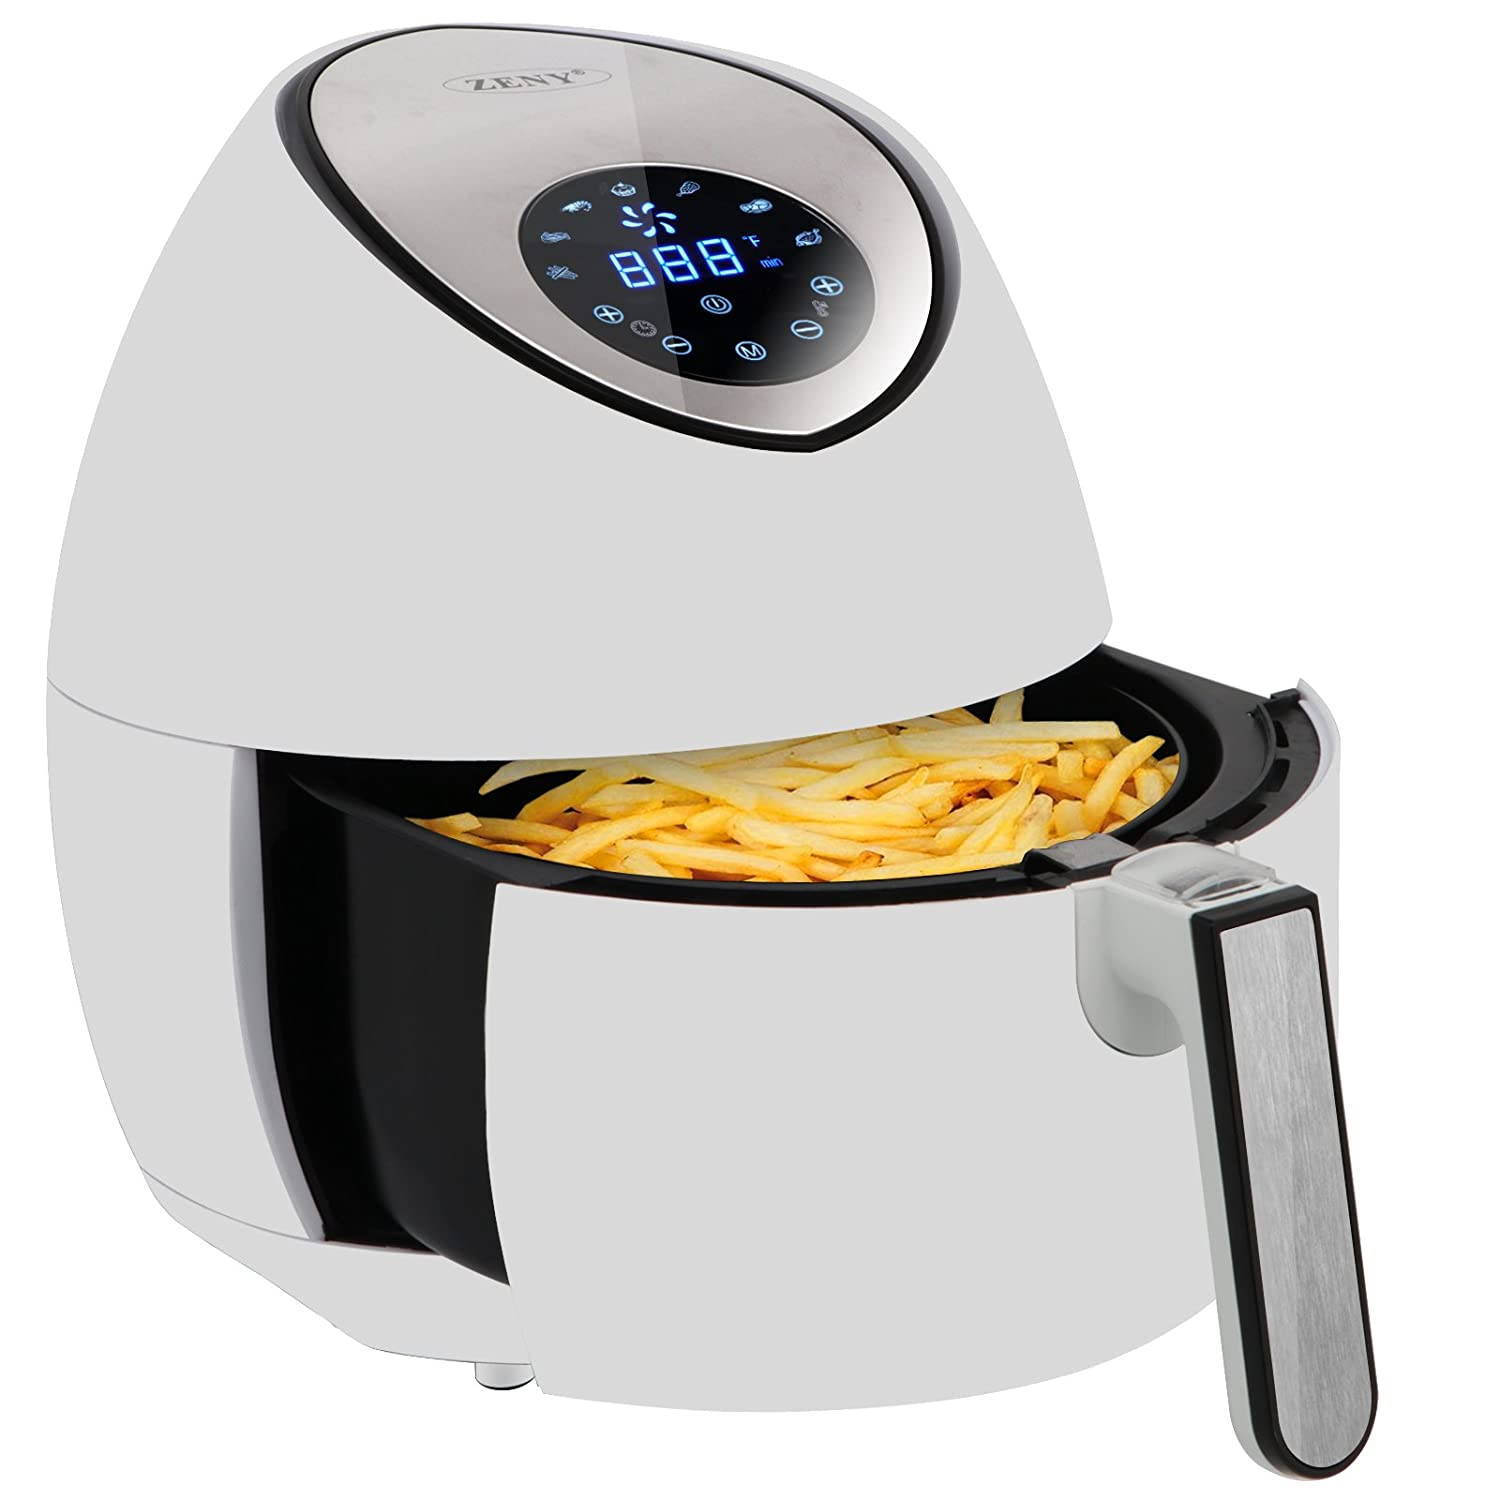 ZENY 3.7 Quarts 7-in-1 Electric Air Fryer Touch Screen Control Programmable, 7 Cooking Presets for Healthy Oil Free Cooking, w/Recipe Book and Dishwasher Safe Parts (Black)